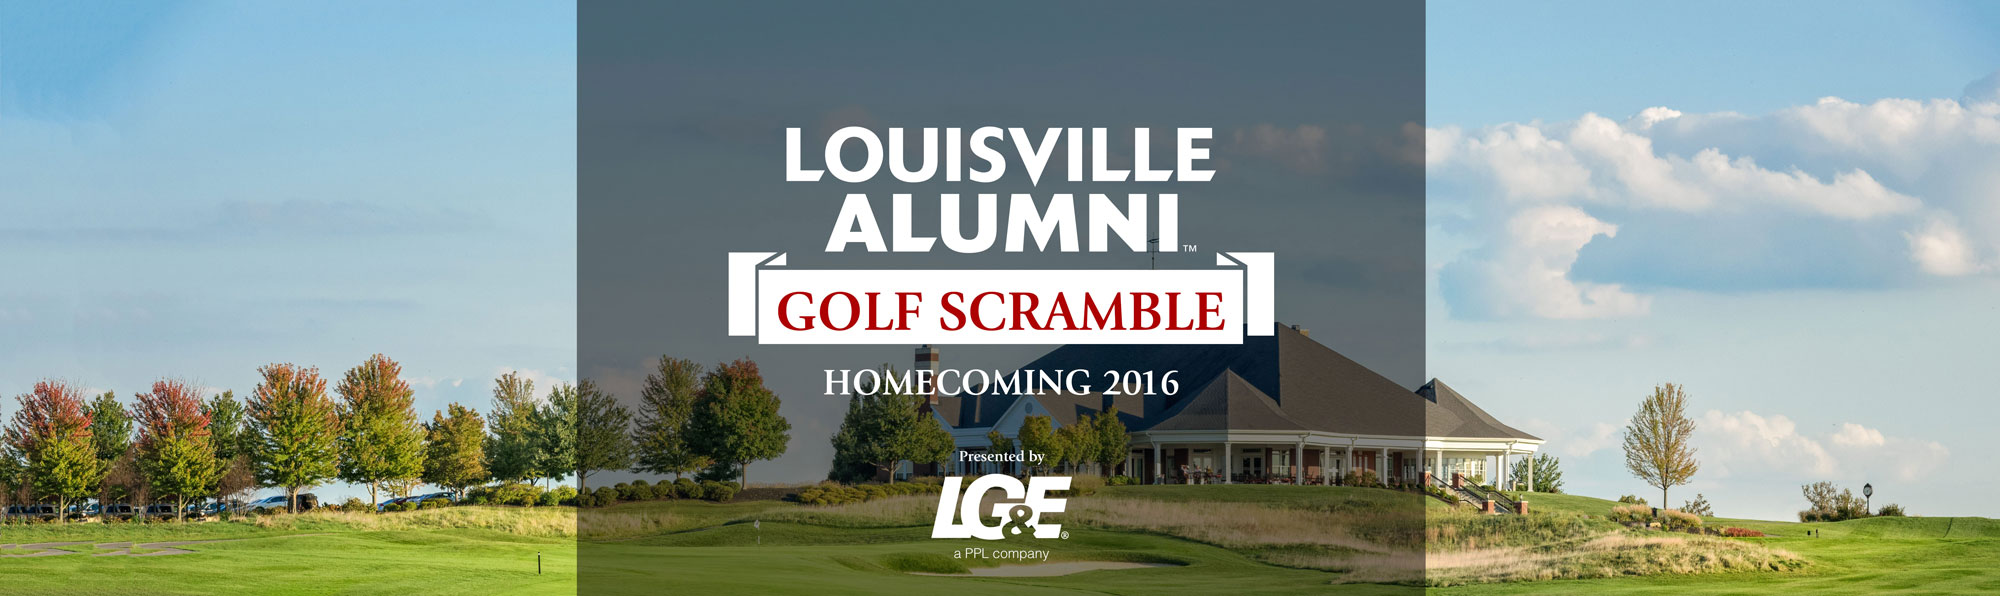 Homecoming Golf Scramble